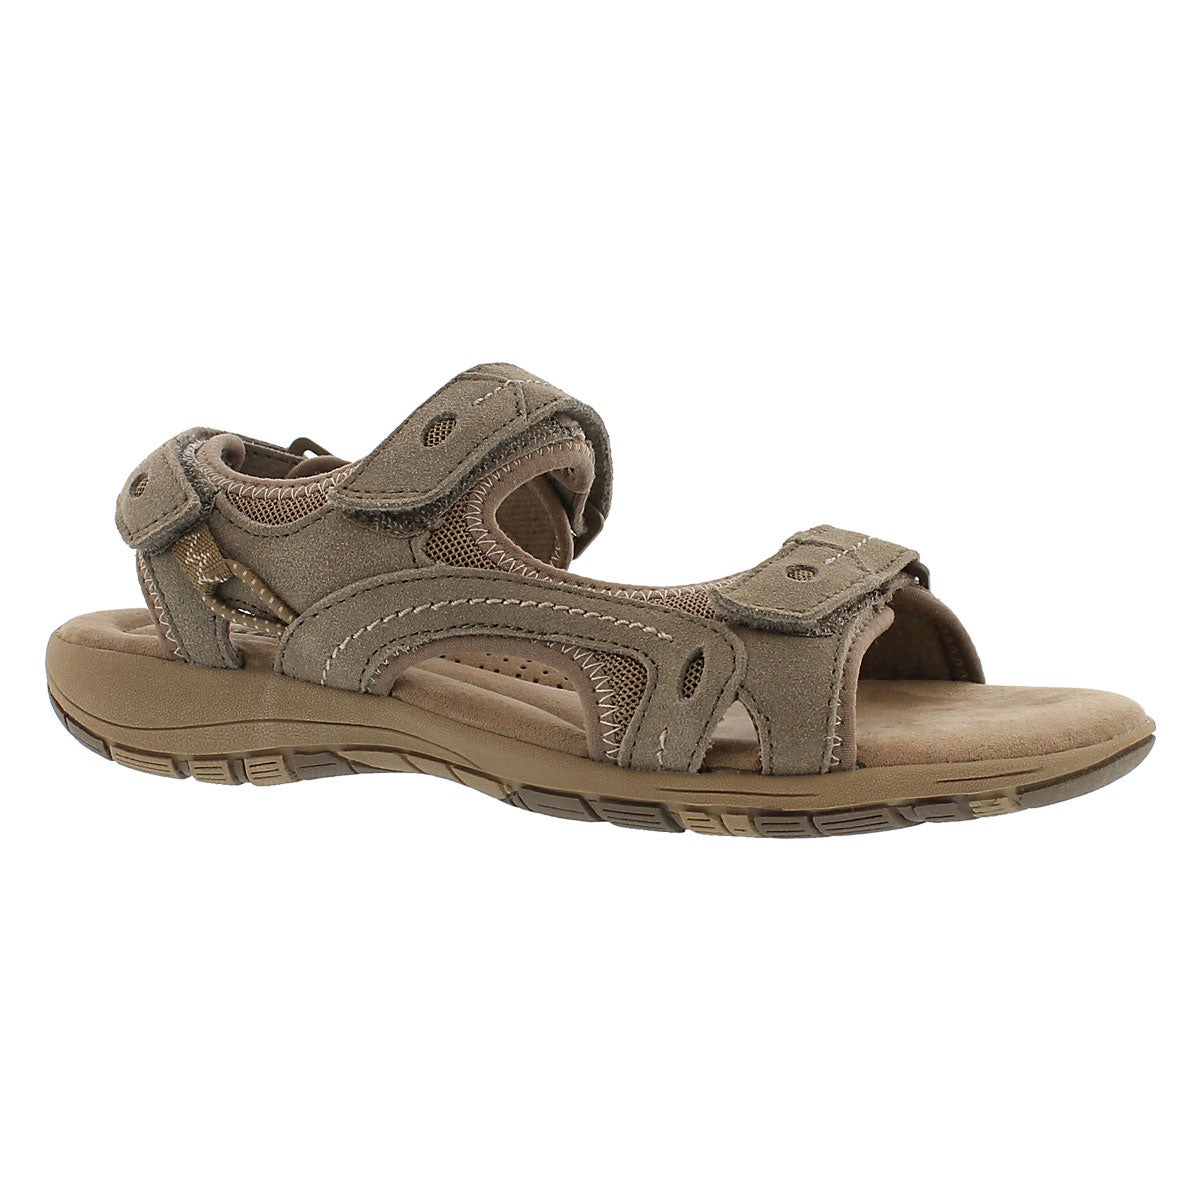 Women's GLADYS brown 3-strap memory foam sandals